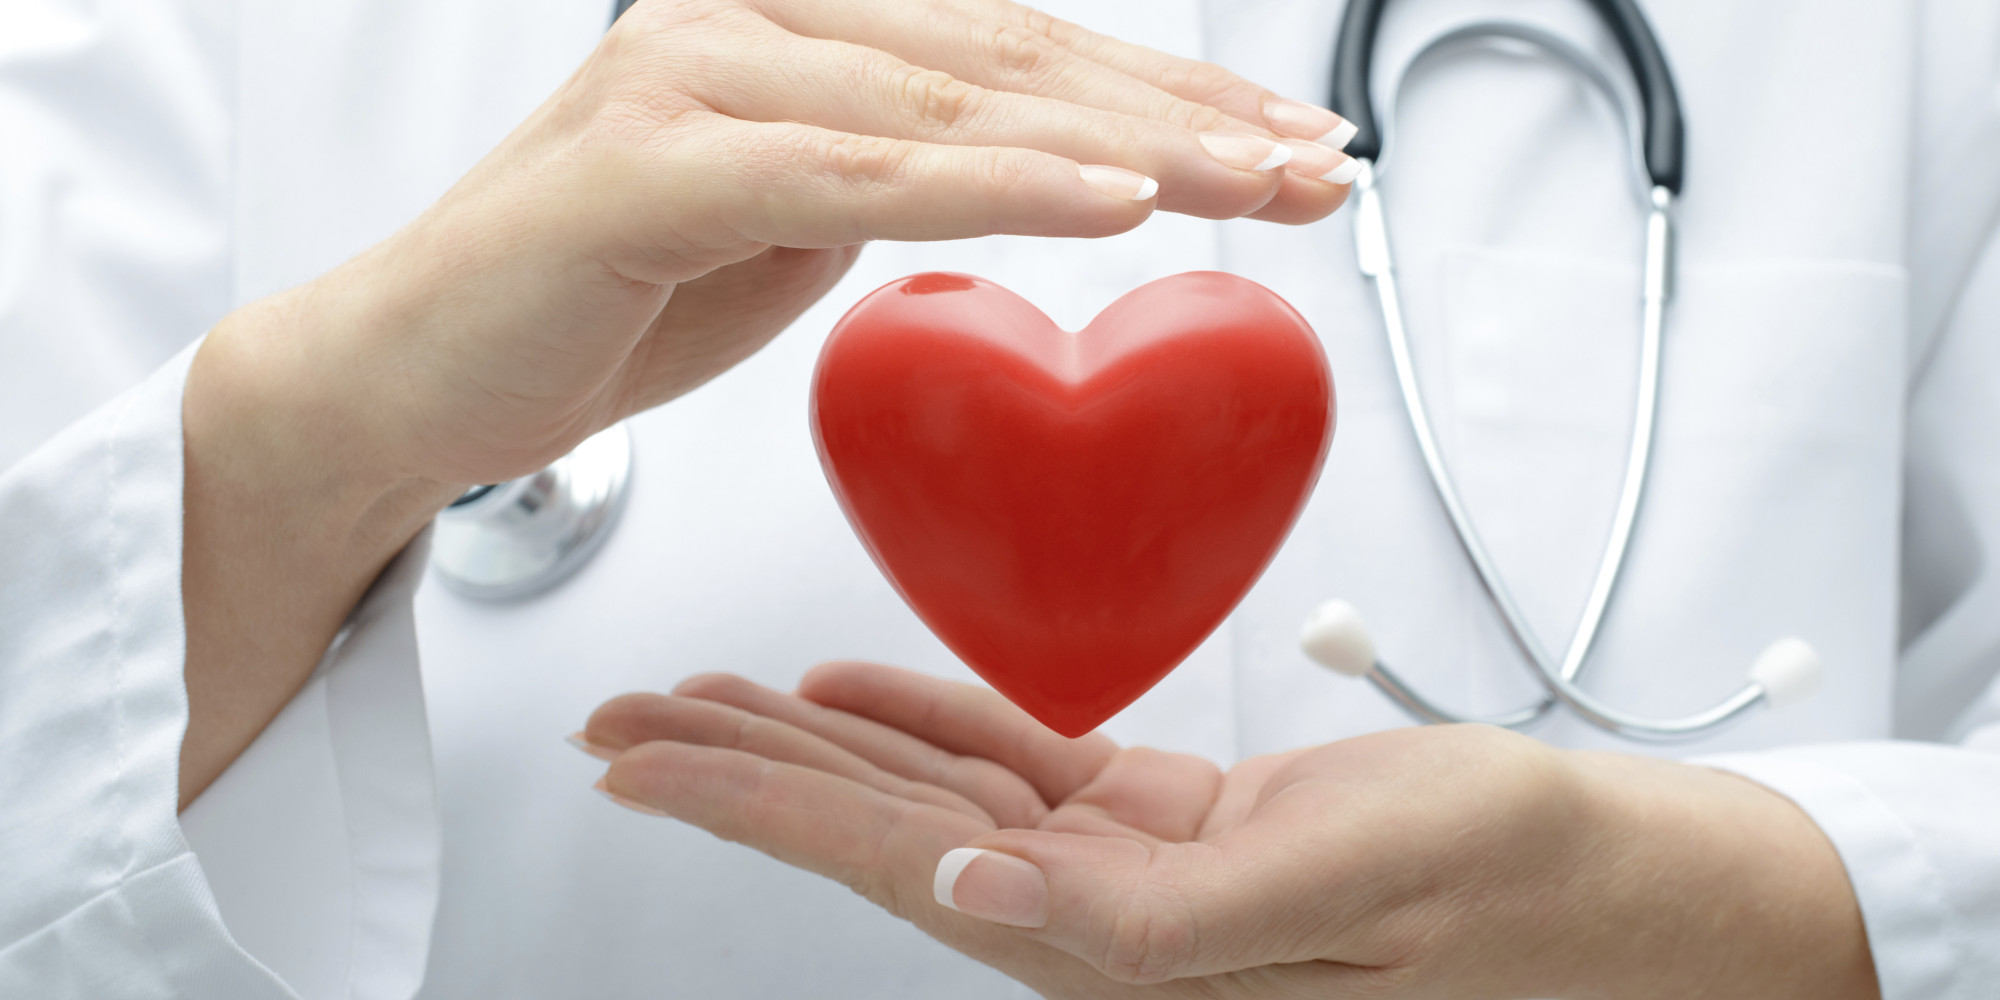 Yoga and Heart Health - Useful Facts You Need to Know